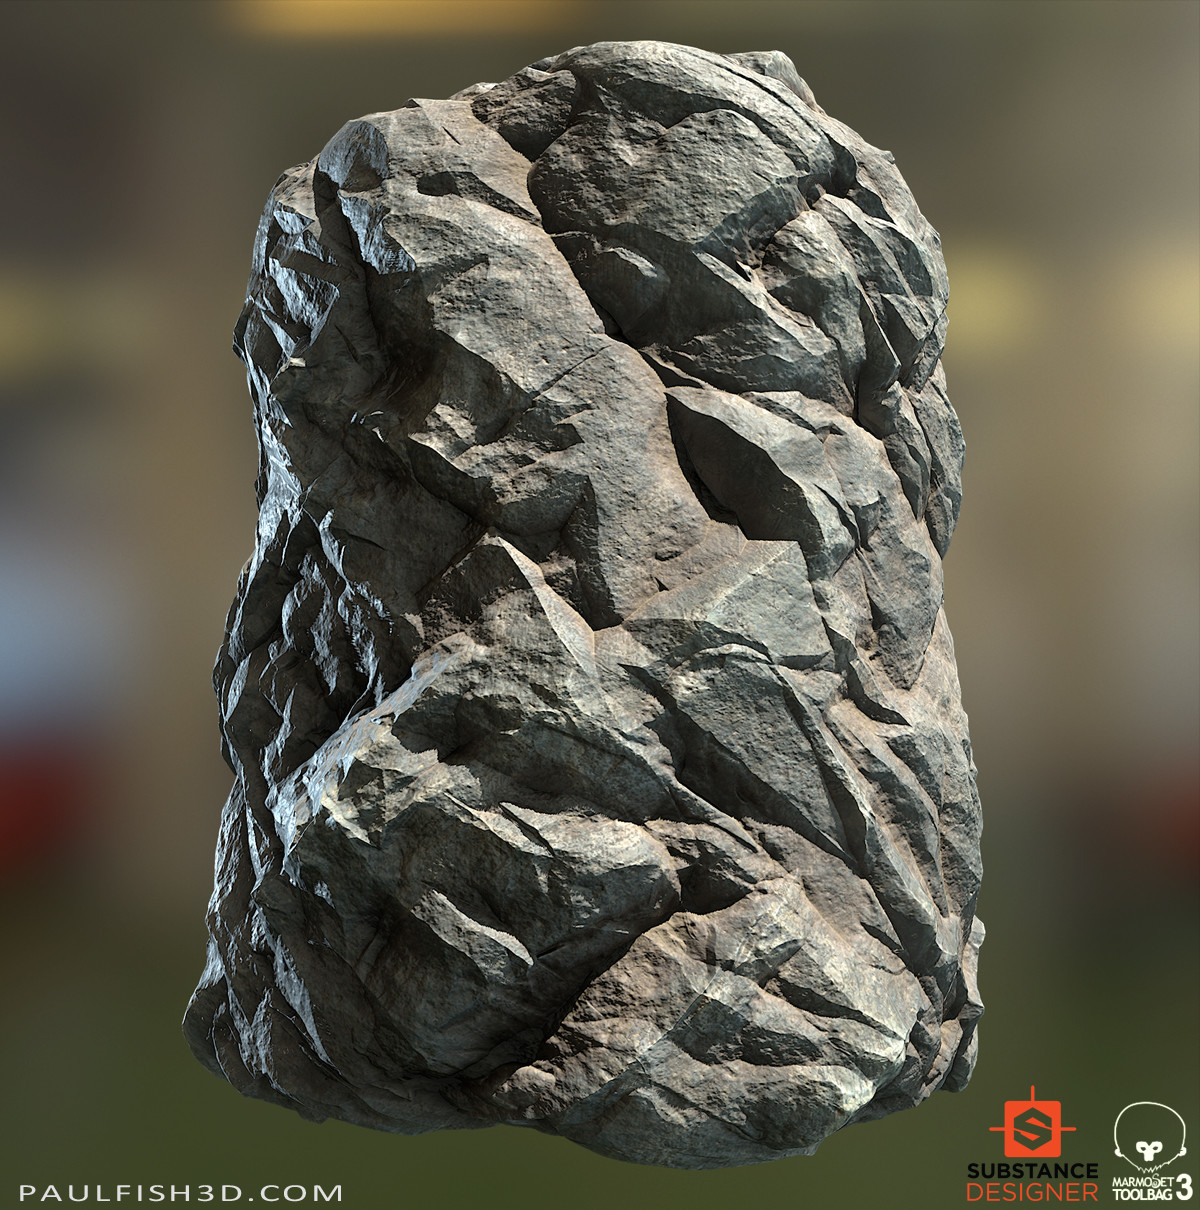 Substance Designer - Cliff Stone